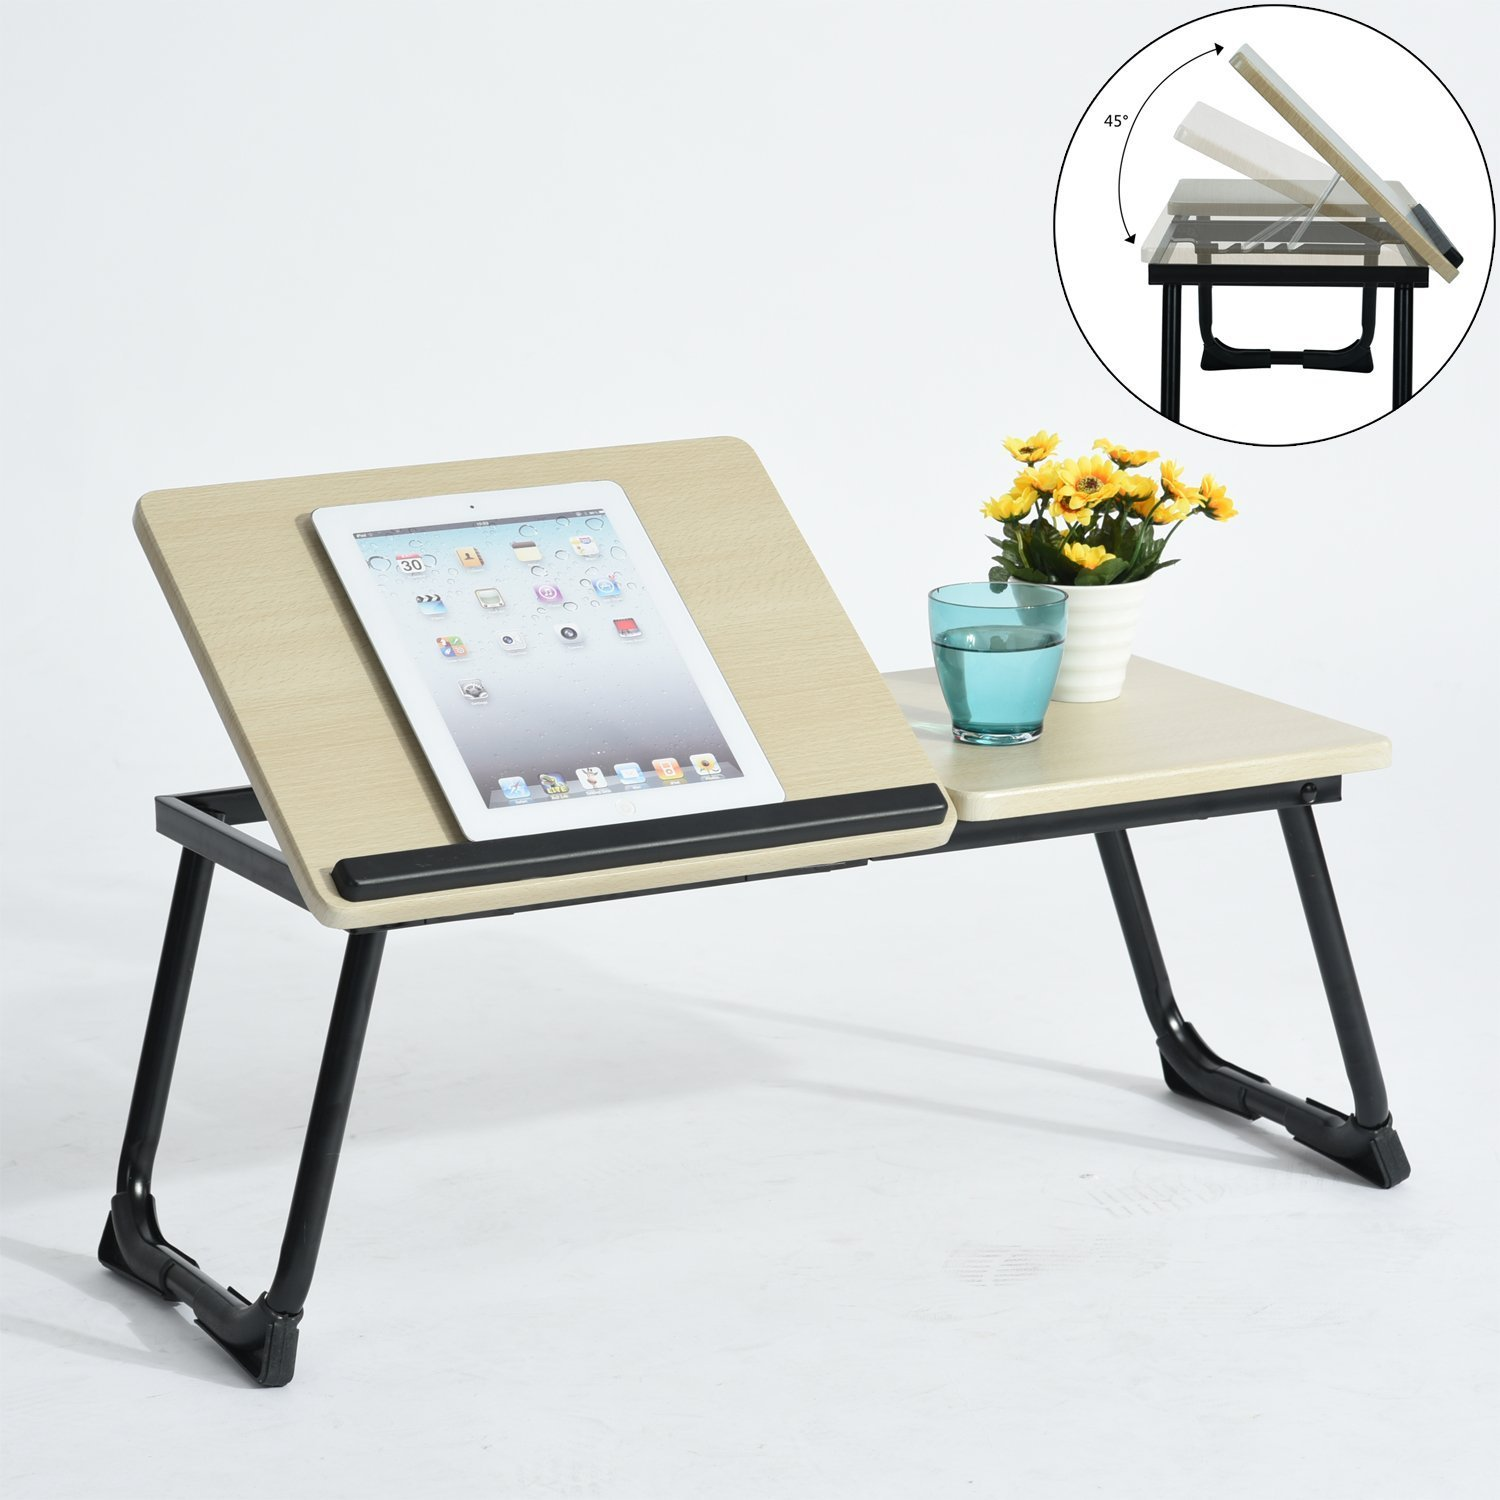 bed laptop desk for computer adjustable portable mobile size of lap sofa table sofas full couch stand holder